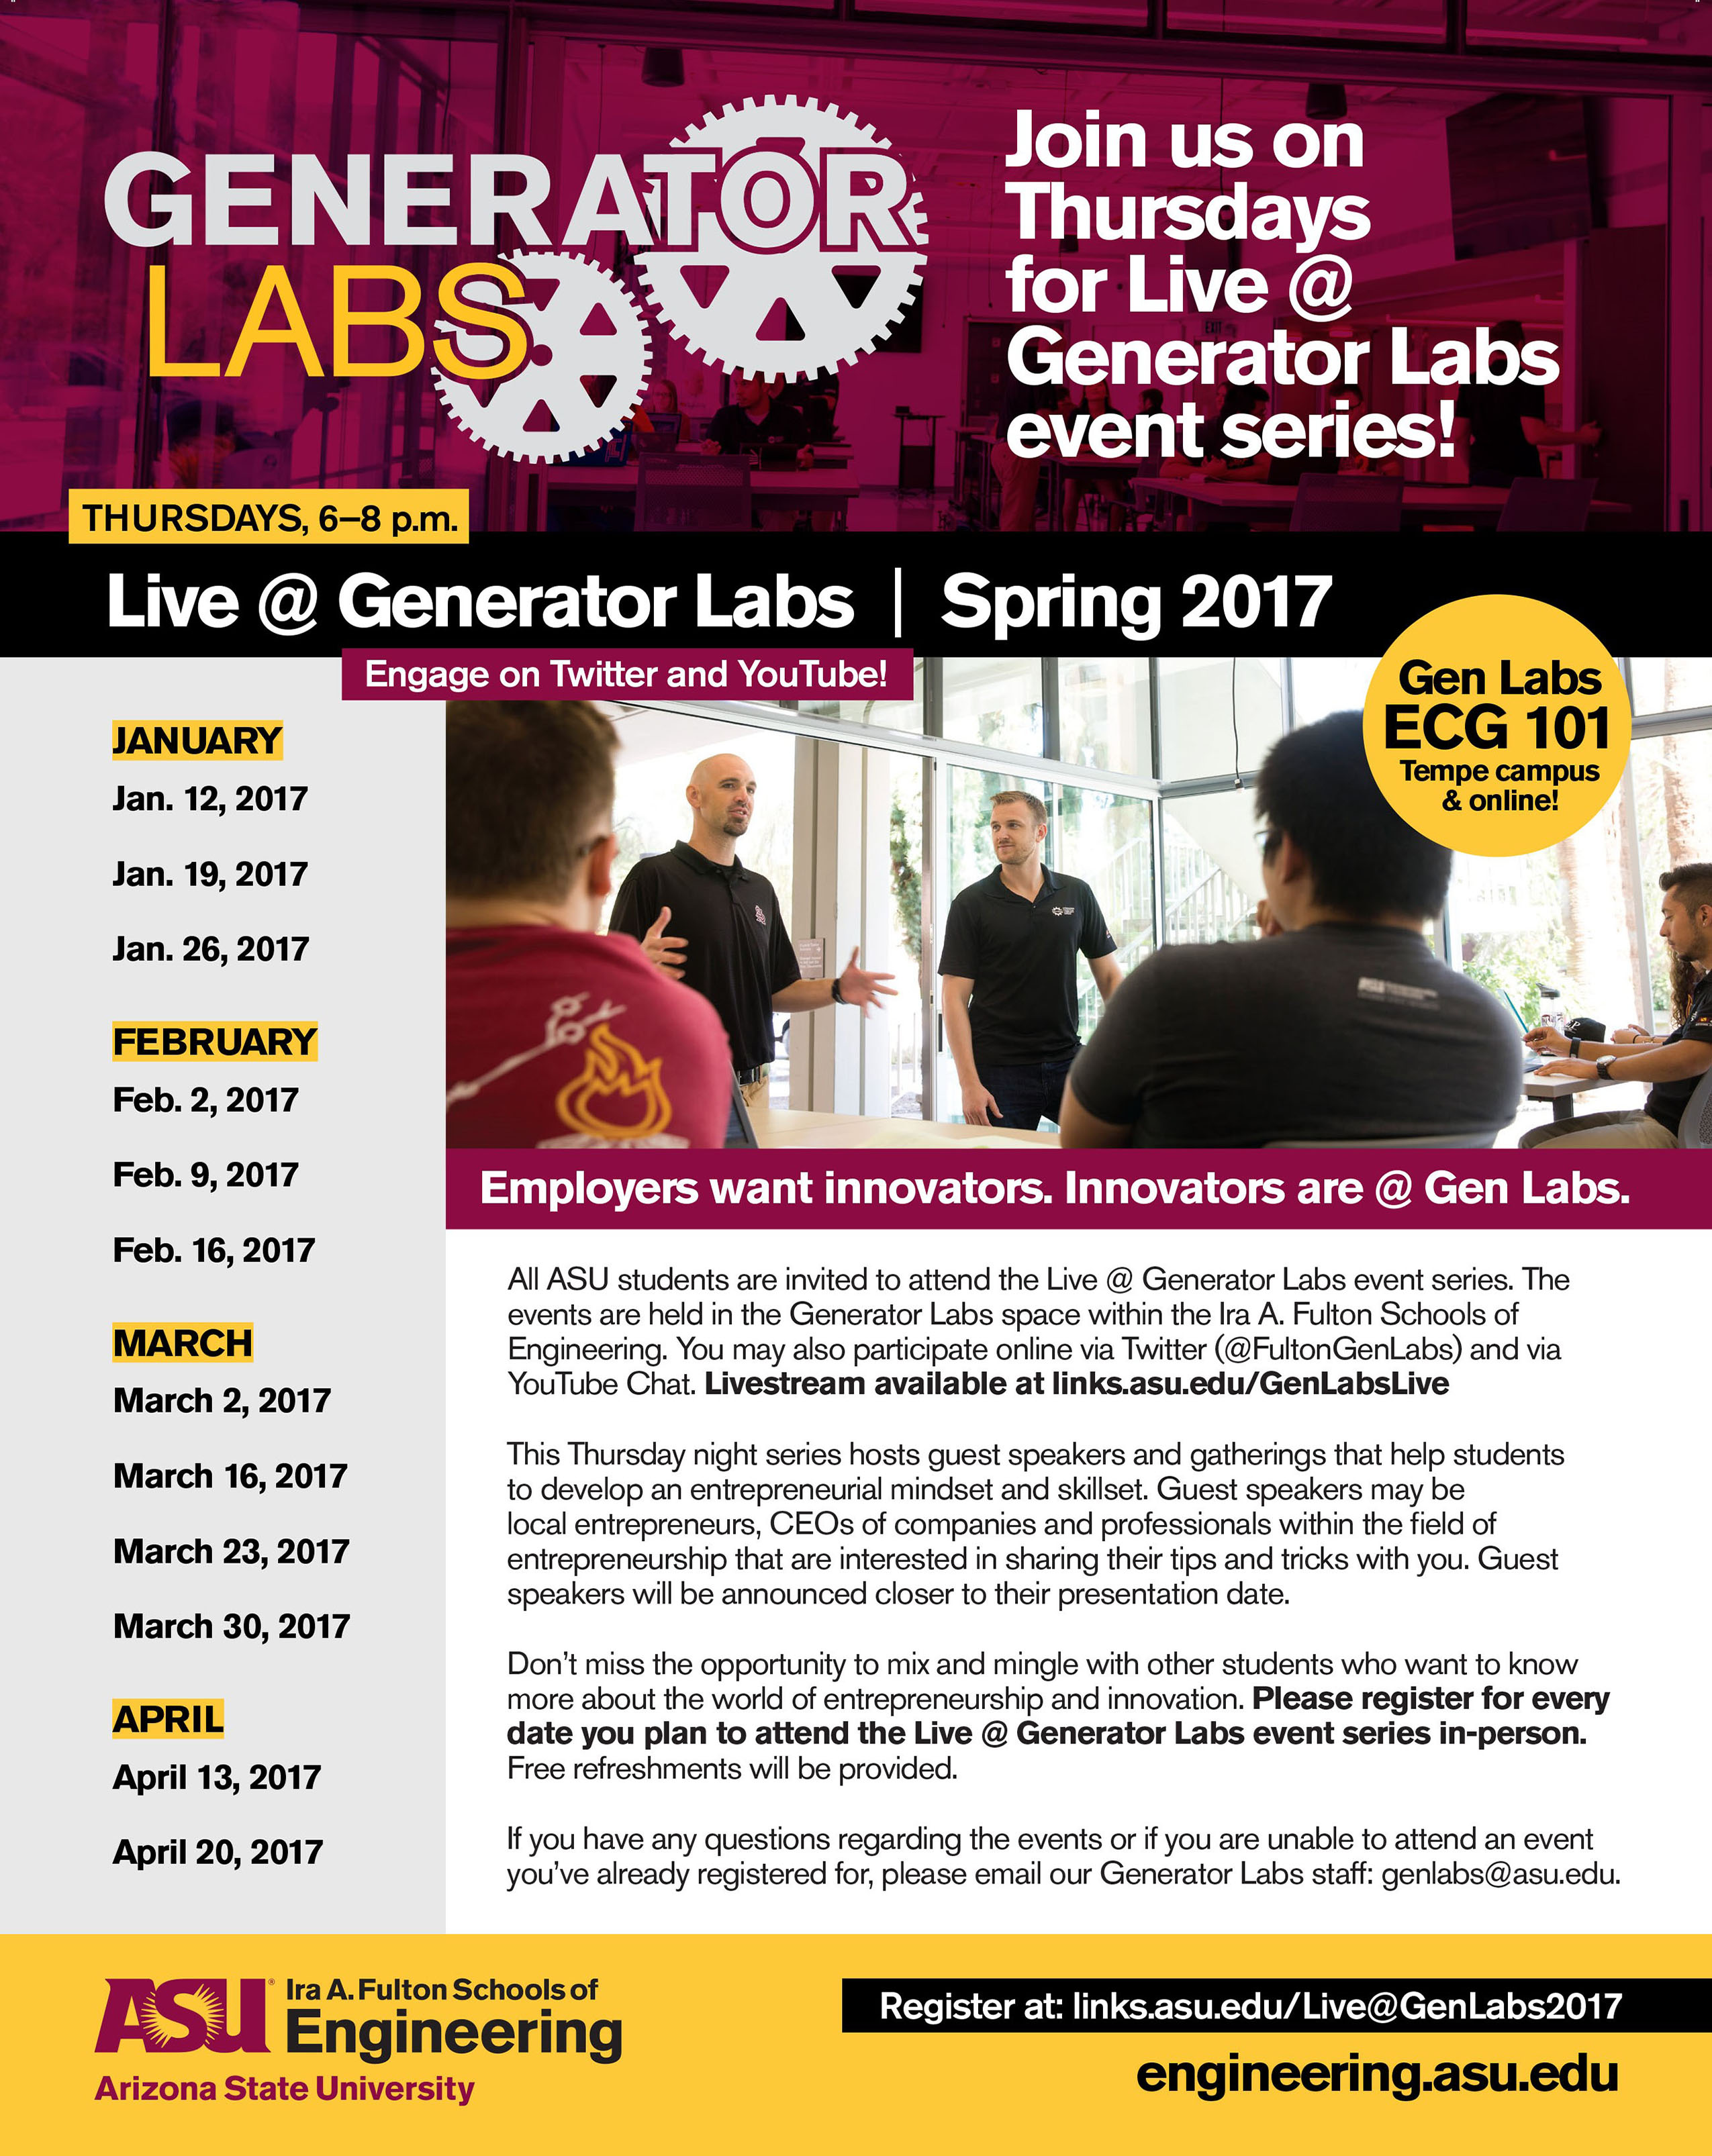 gen labs flyer adjusted size